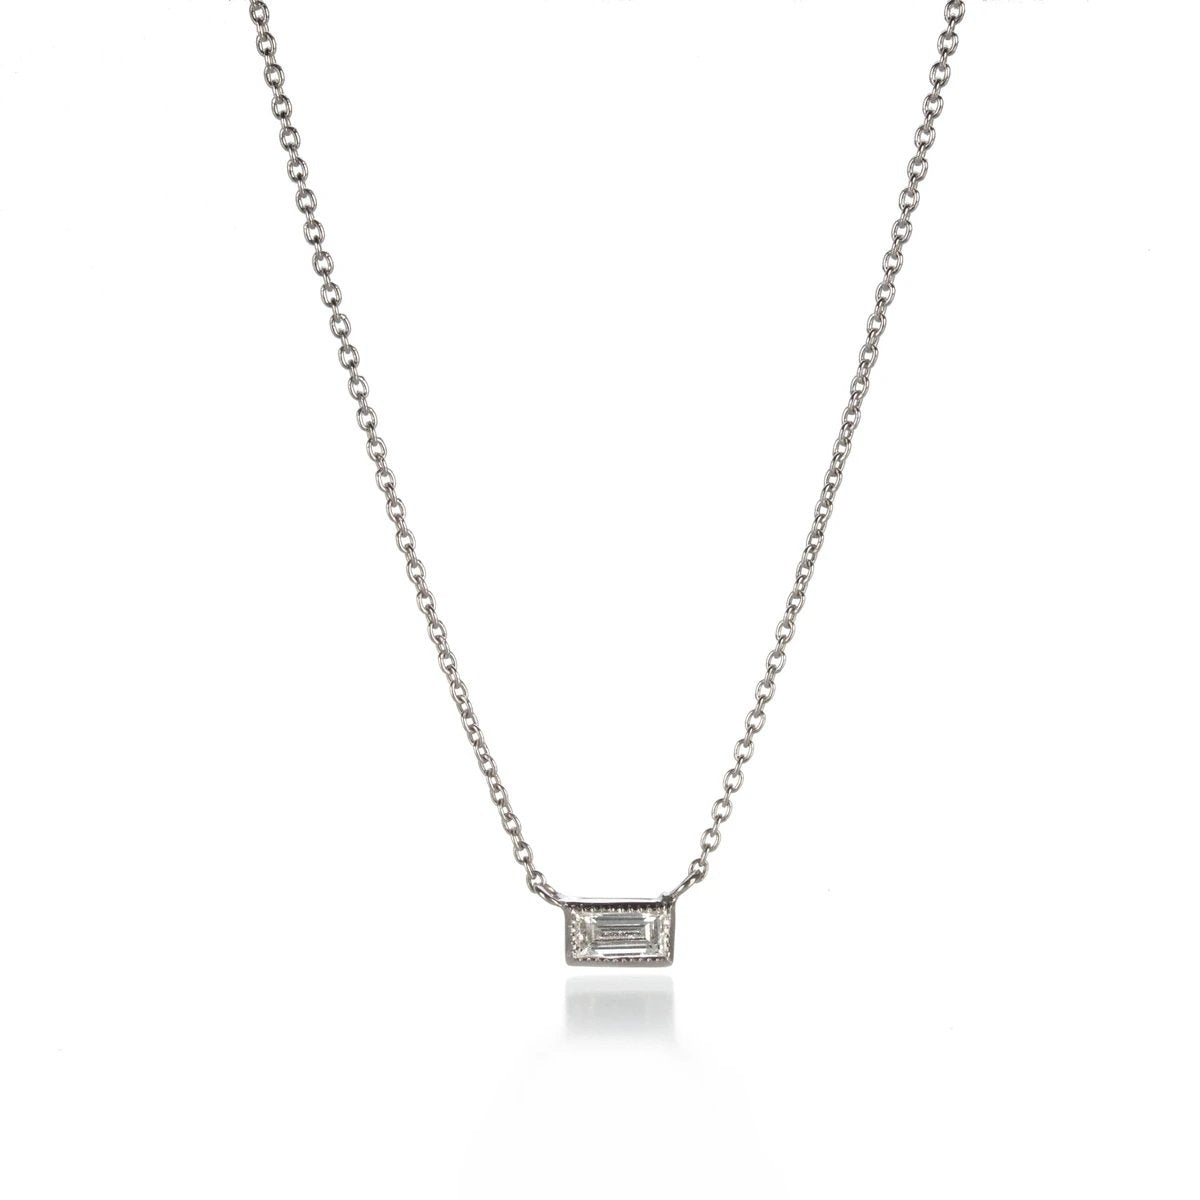 The Silhouette Necklace Single Stone